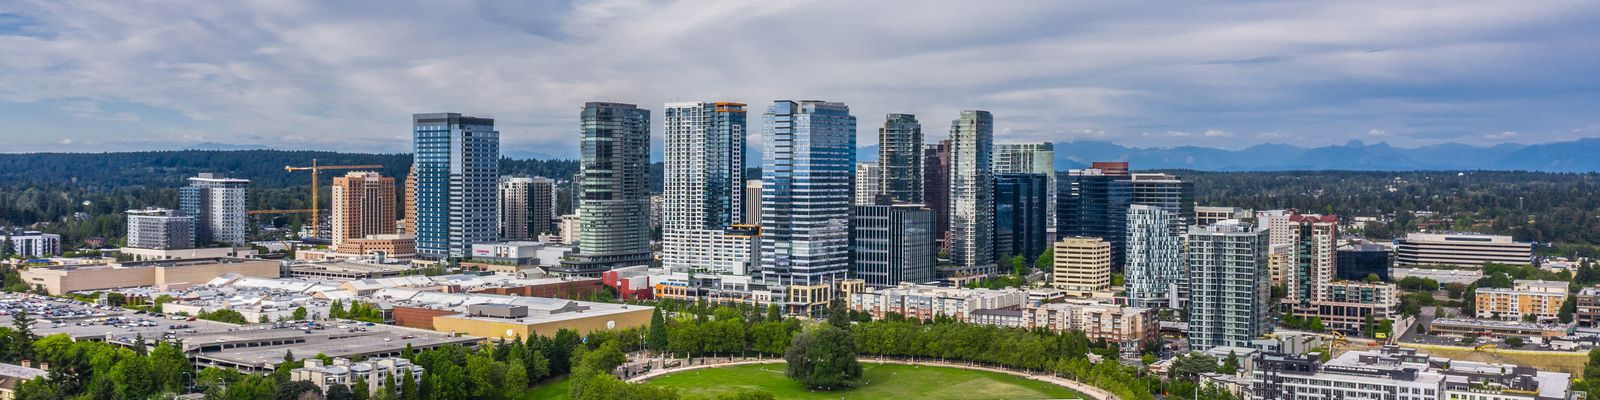 Image of Bellevue Downtown skyline on a partly-cloudy day